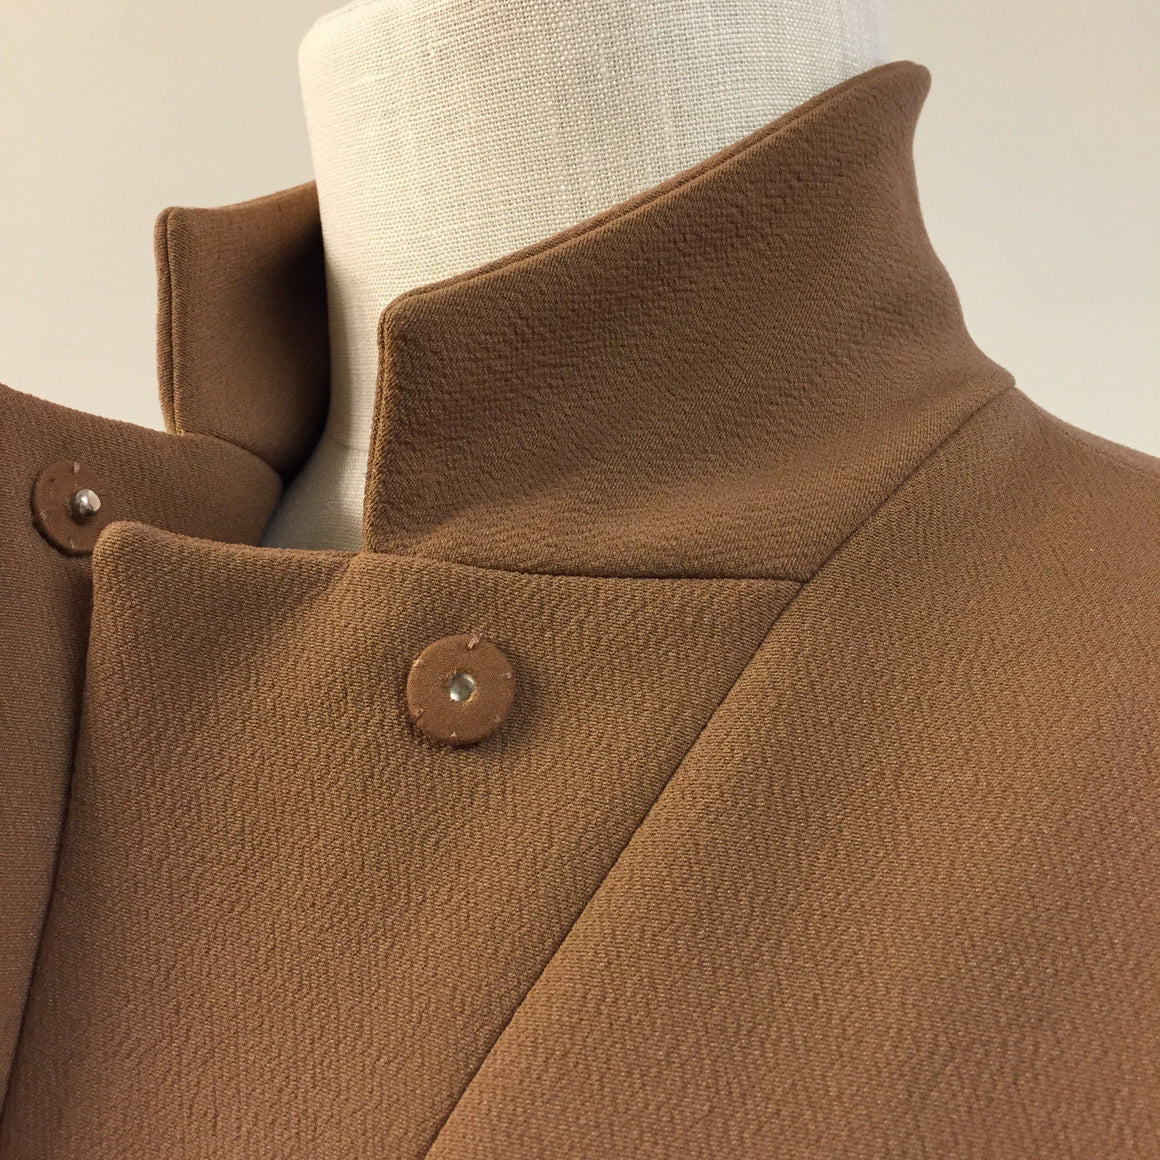 bisbiz.com MARNI  Wheat-Brown Wool-Blend Stand-Collar  Fitted Jacket Blazer  Size: 4 - Bis Luxury Resale